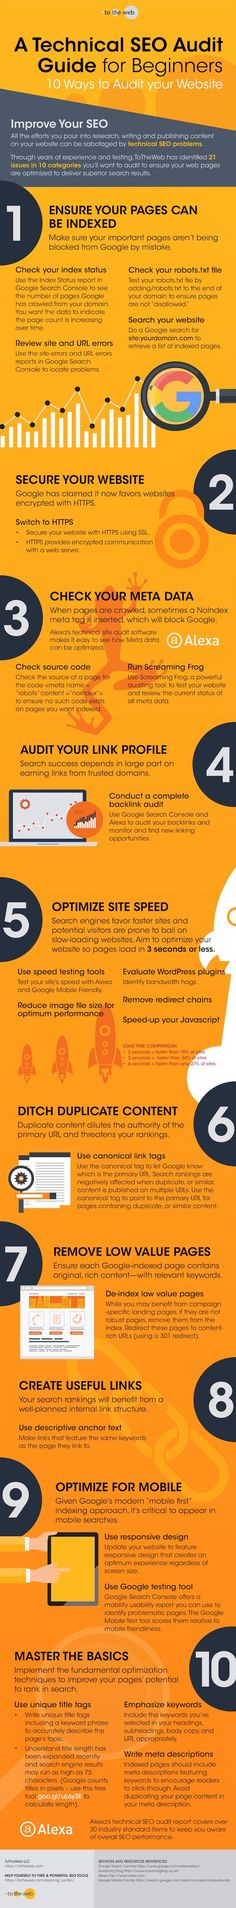 Technical SEO Audit Checklist to Improve Google Search - #Infographic